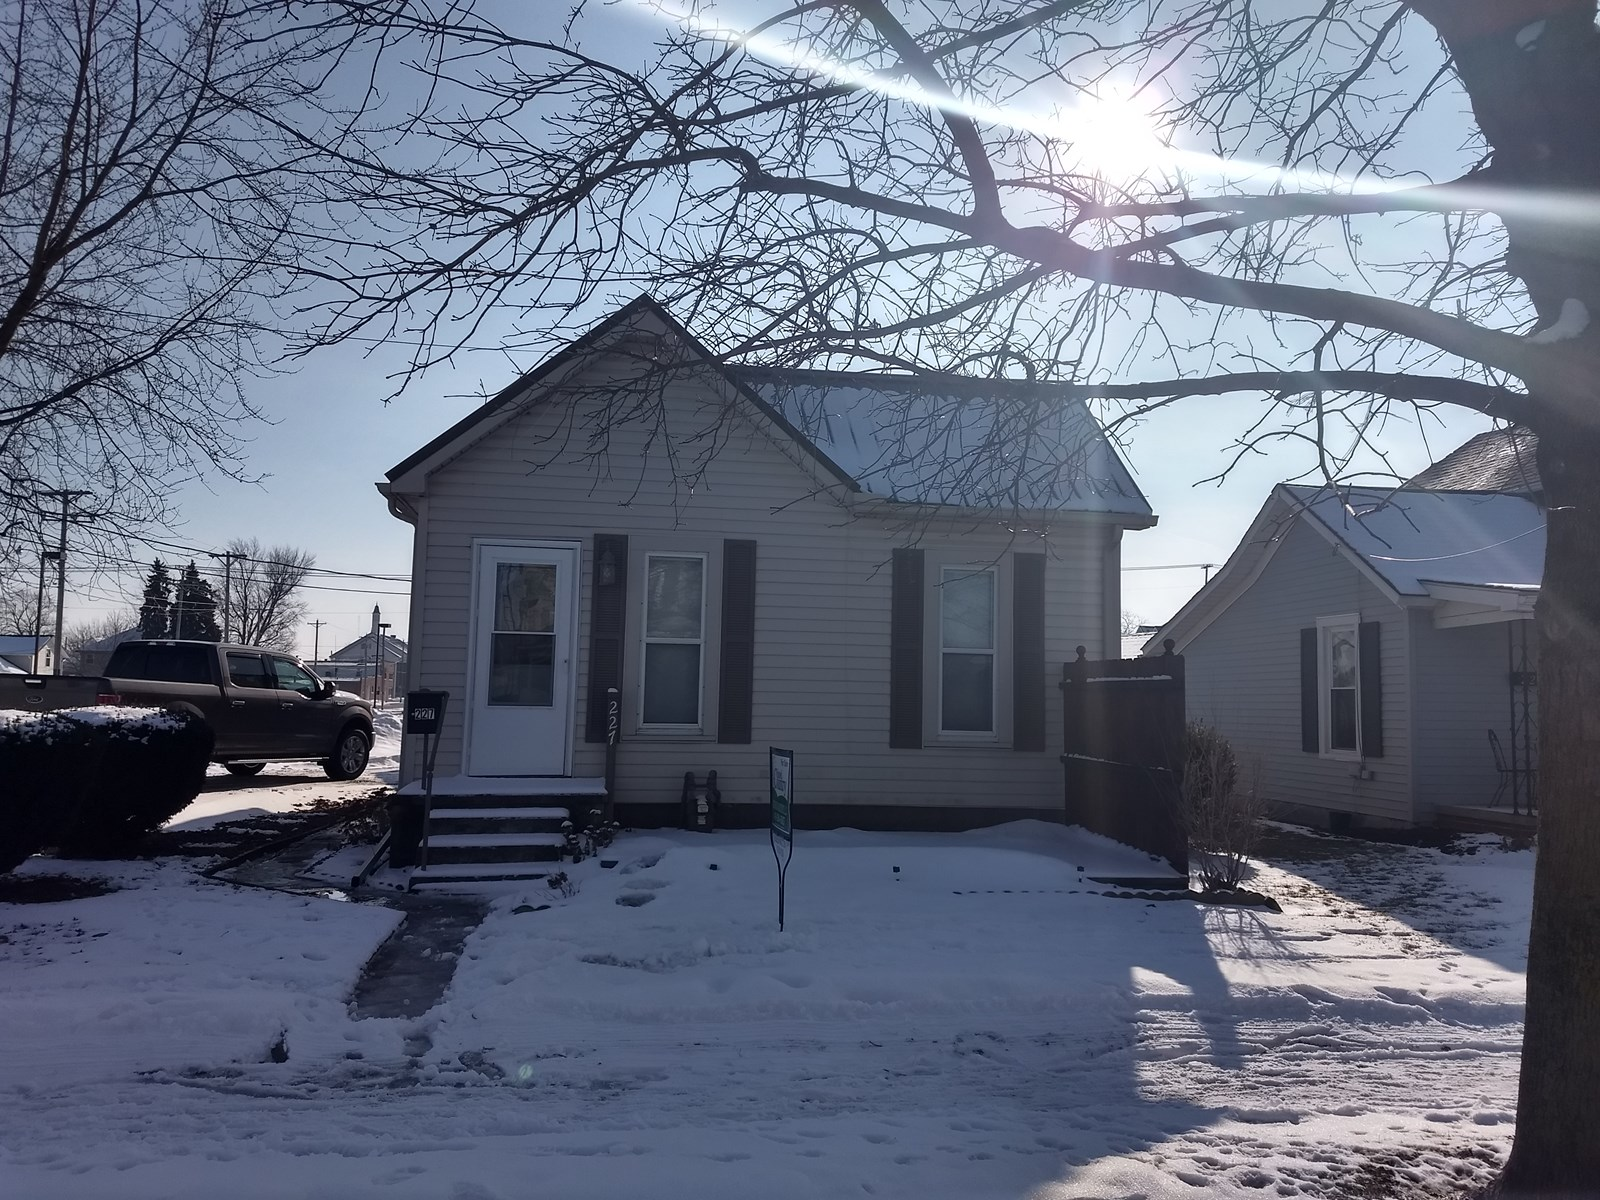 227 Dow Street, Carey - 1 Bedroom Home in Carey, OH